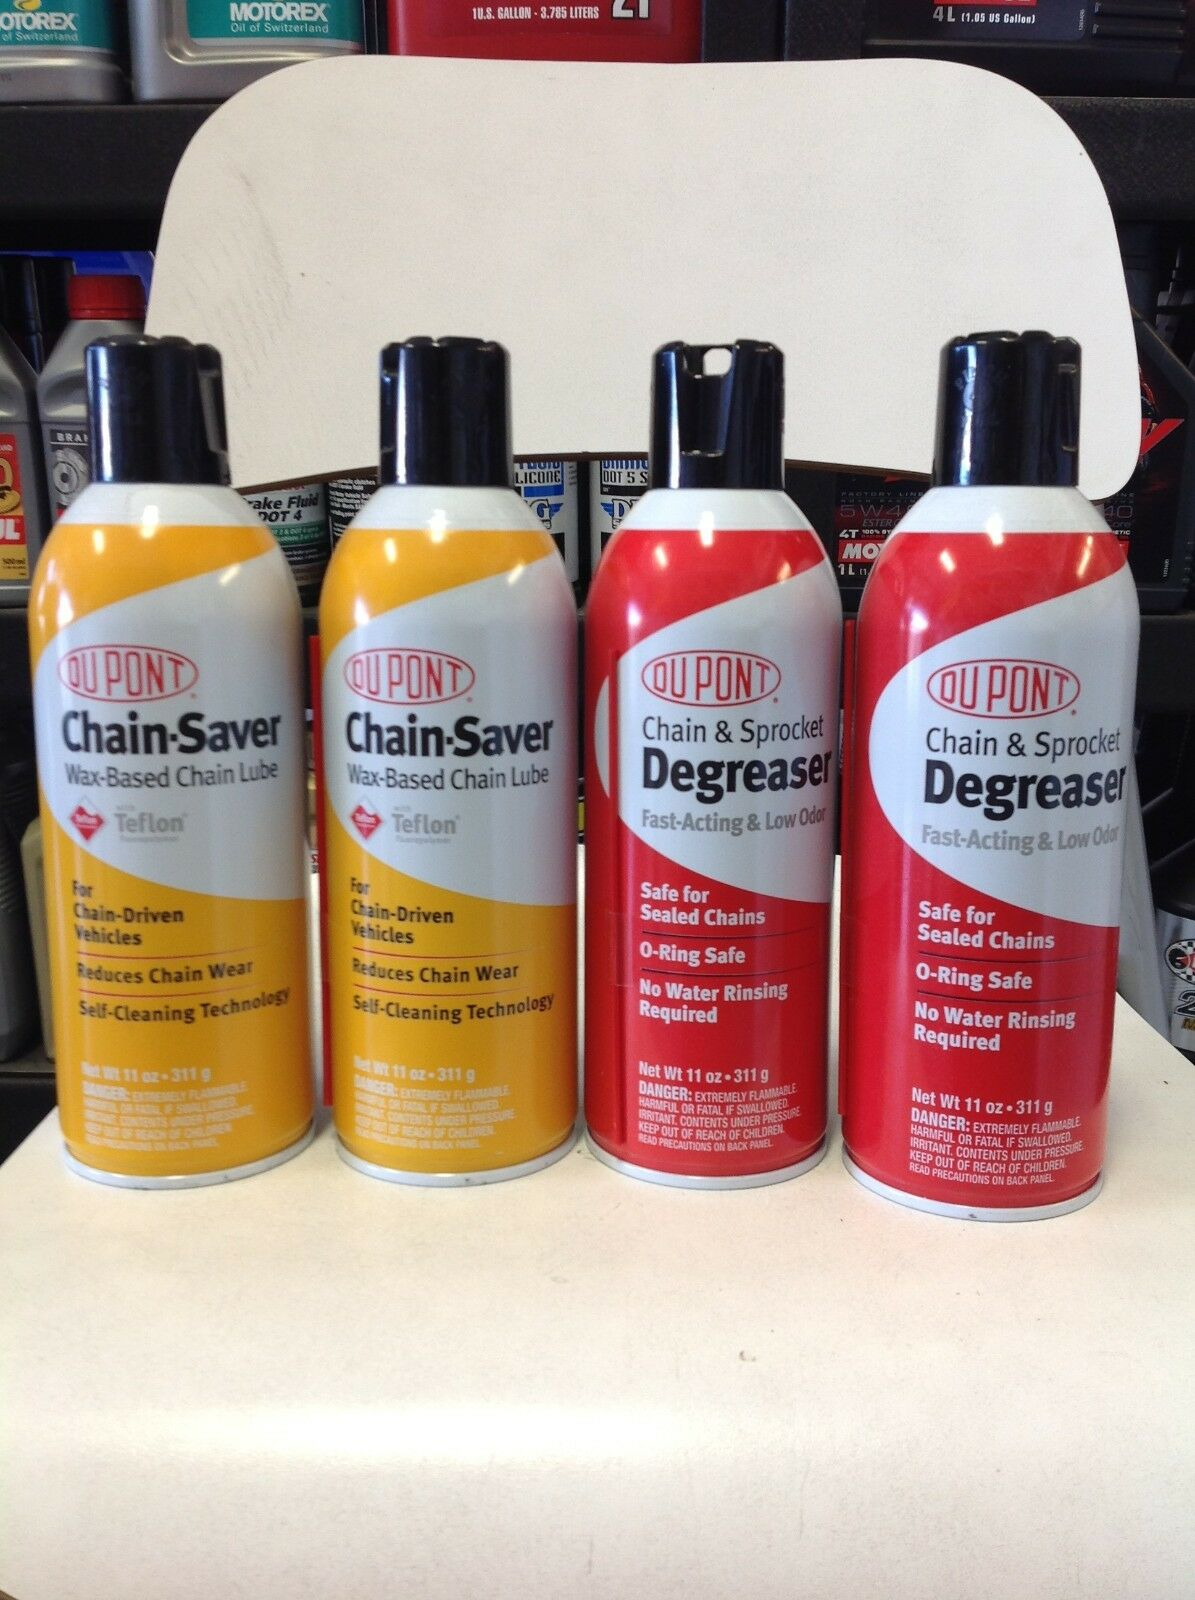 DuPont Degreaser and DuPont Chain Saver Pack  11 oz